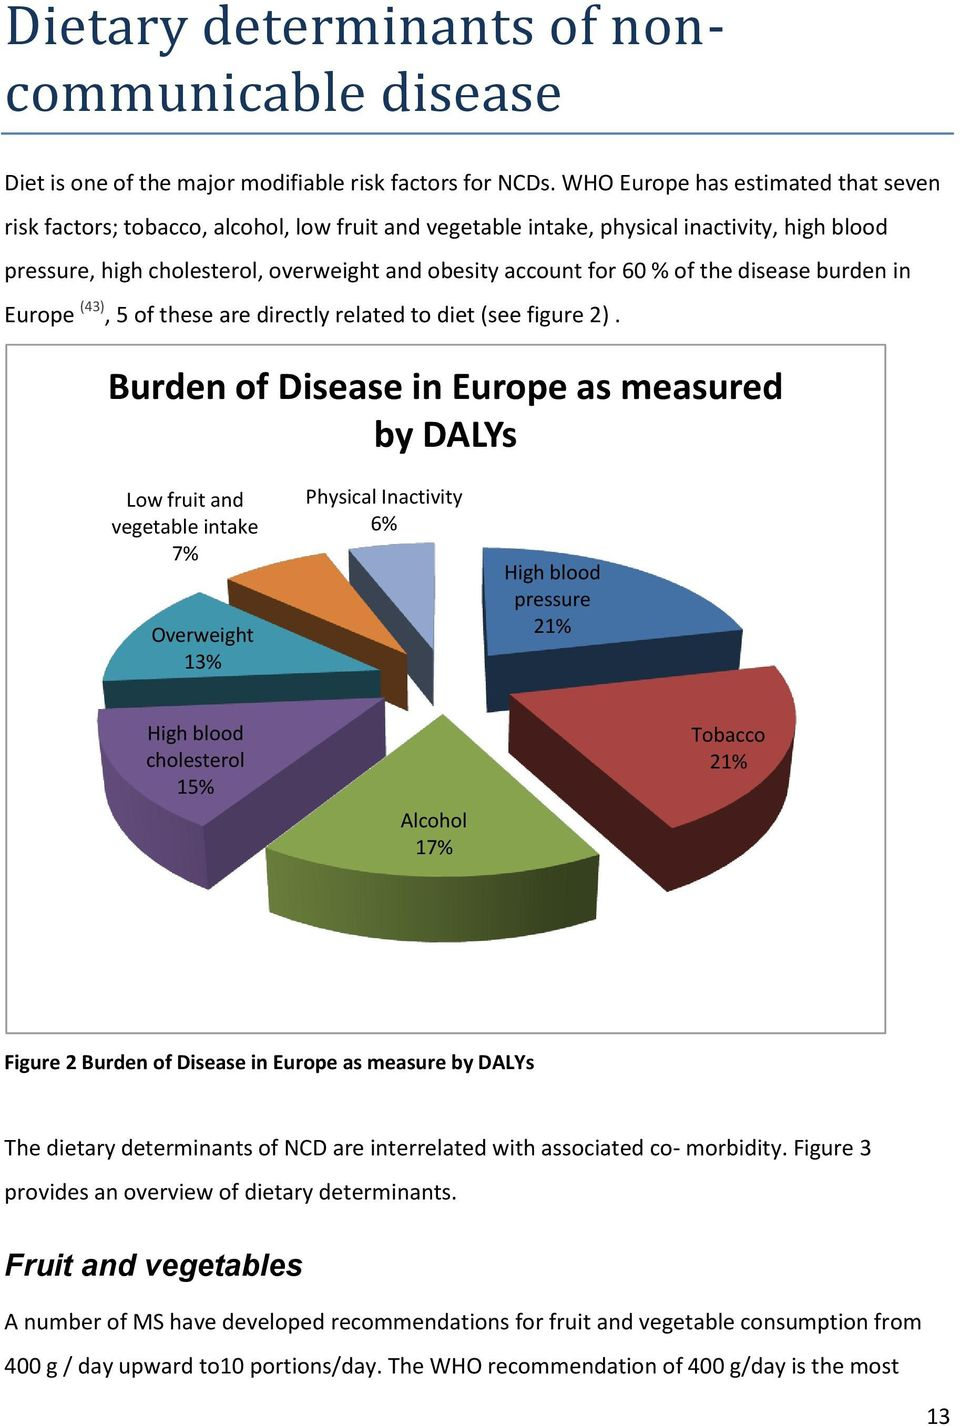 of the disease burden in Europe (43), 5 of these are directly related to diet (see figure 2).